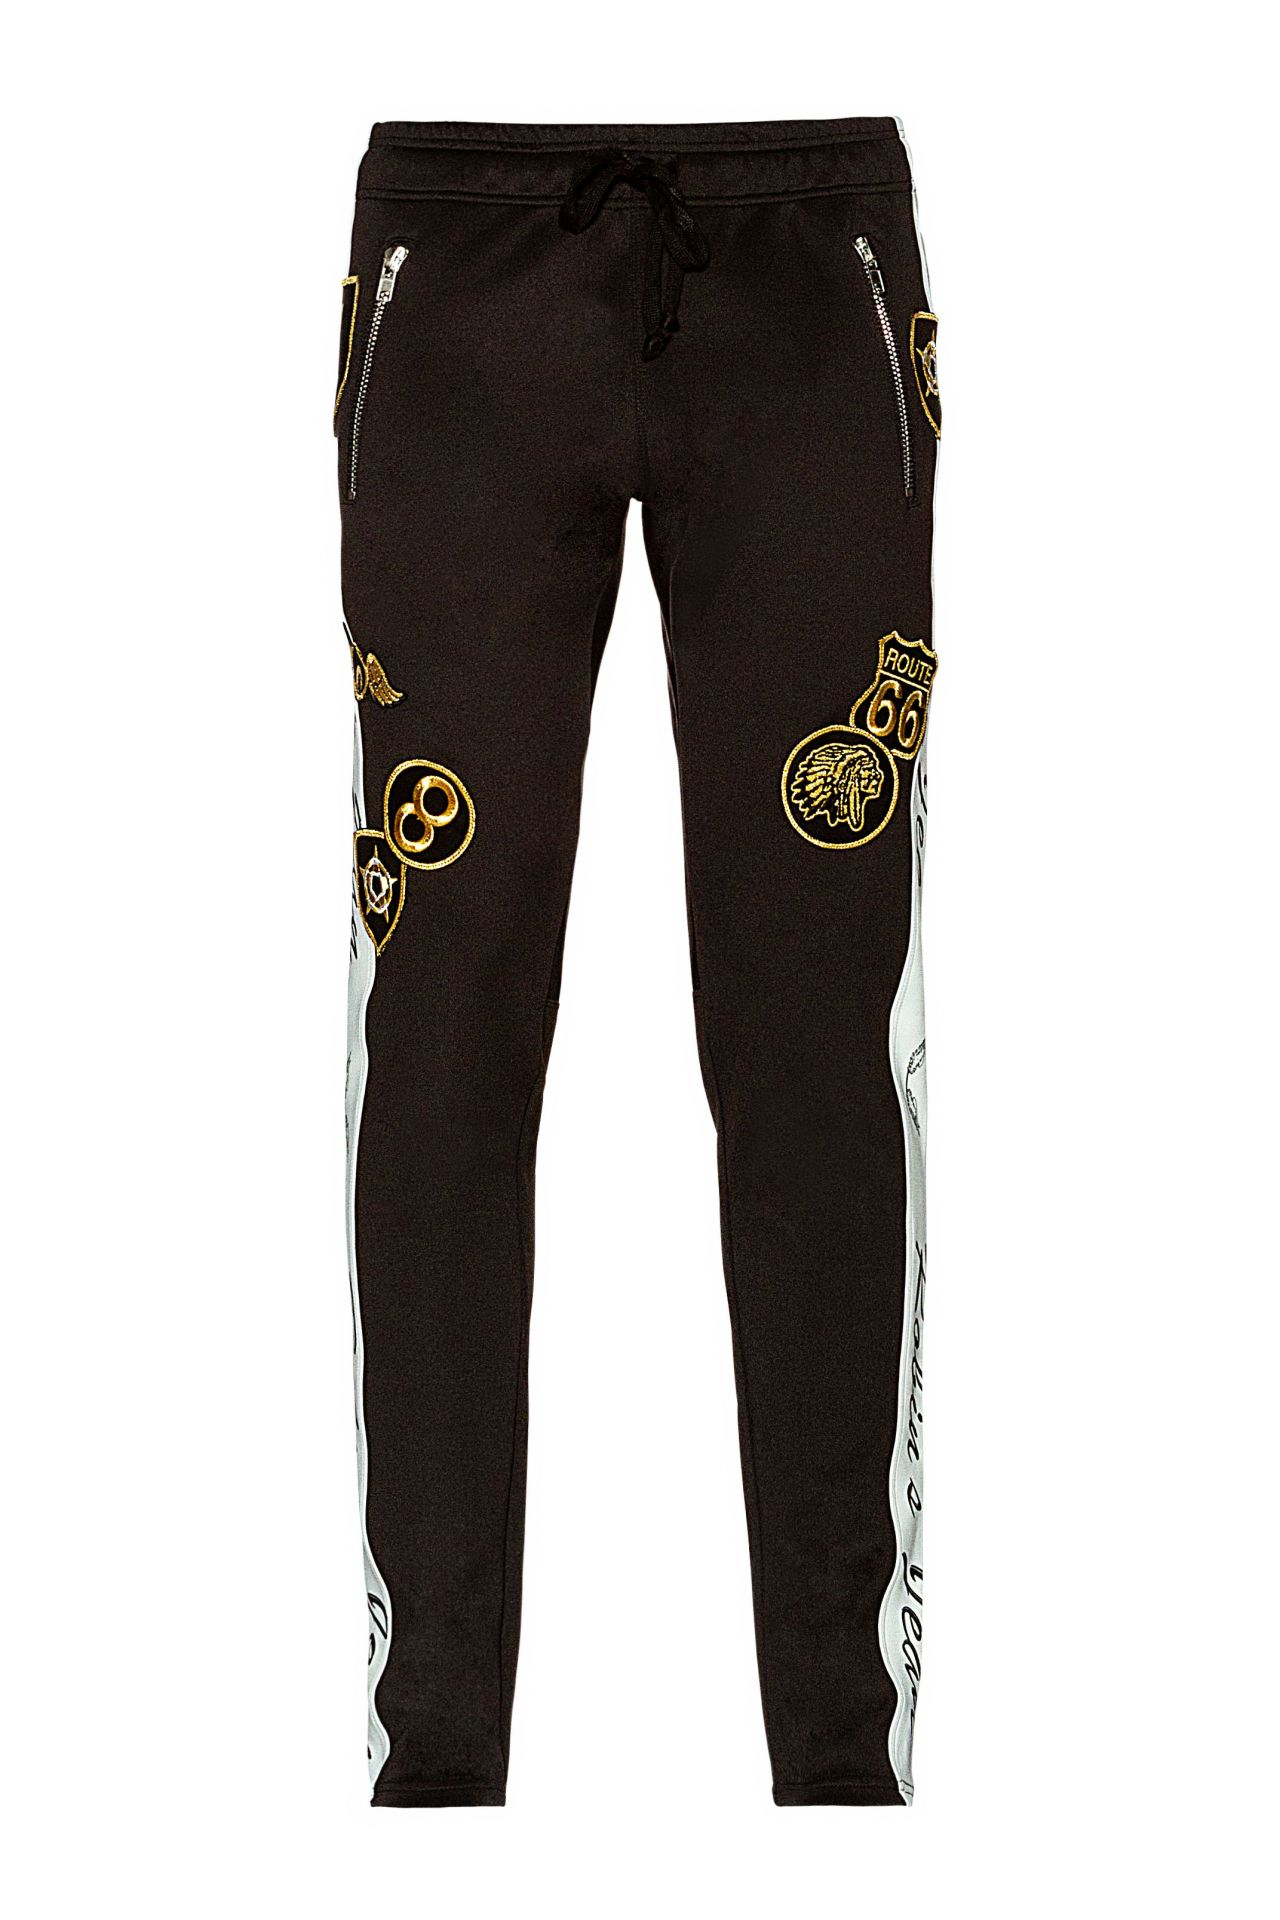 ROBIN TEAM JOGGER WITH PATCHES IN BLACK